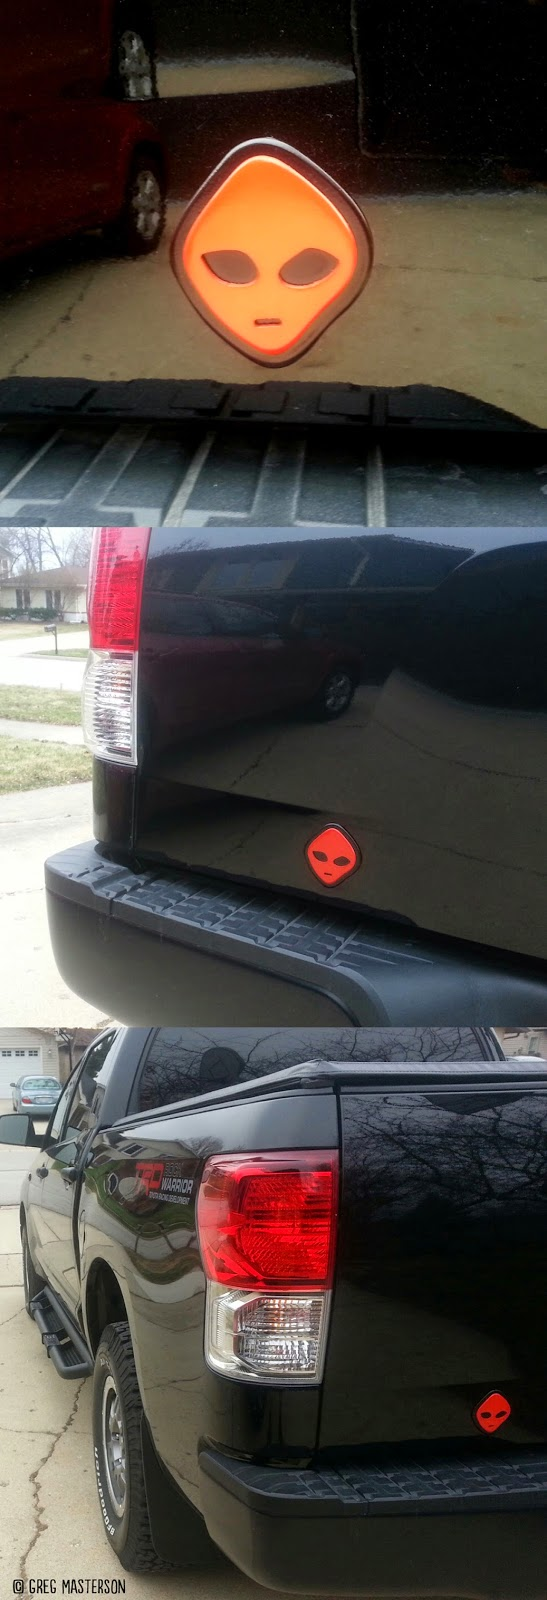 Red and Black WATTO Distinctive Metal Wear Alien Art on Toyota Tundra